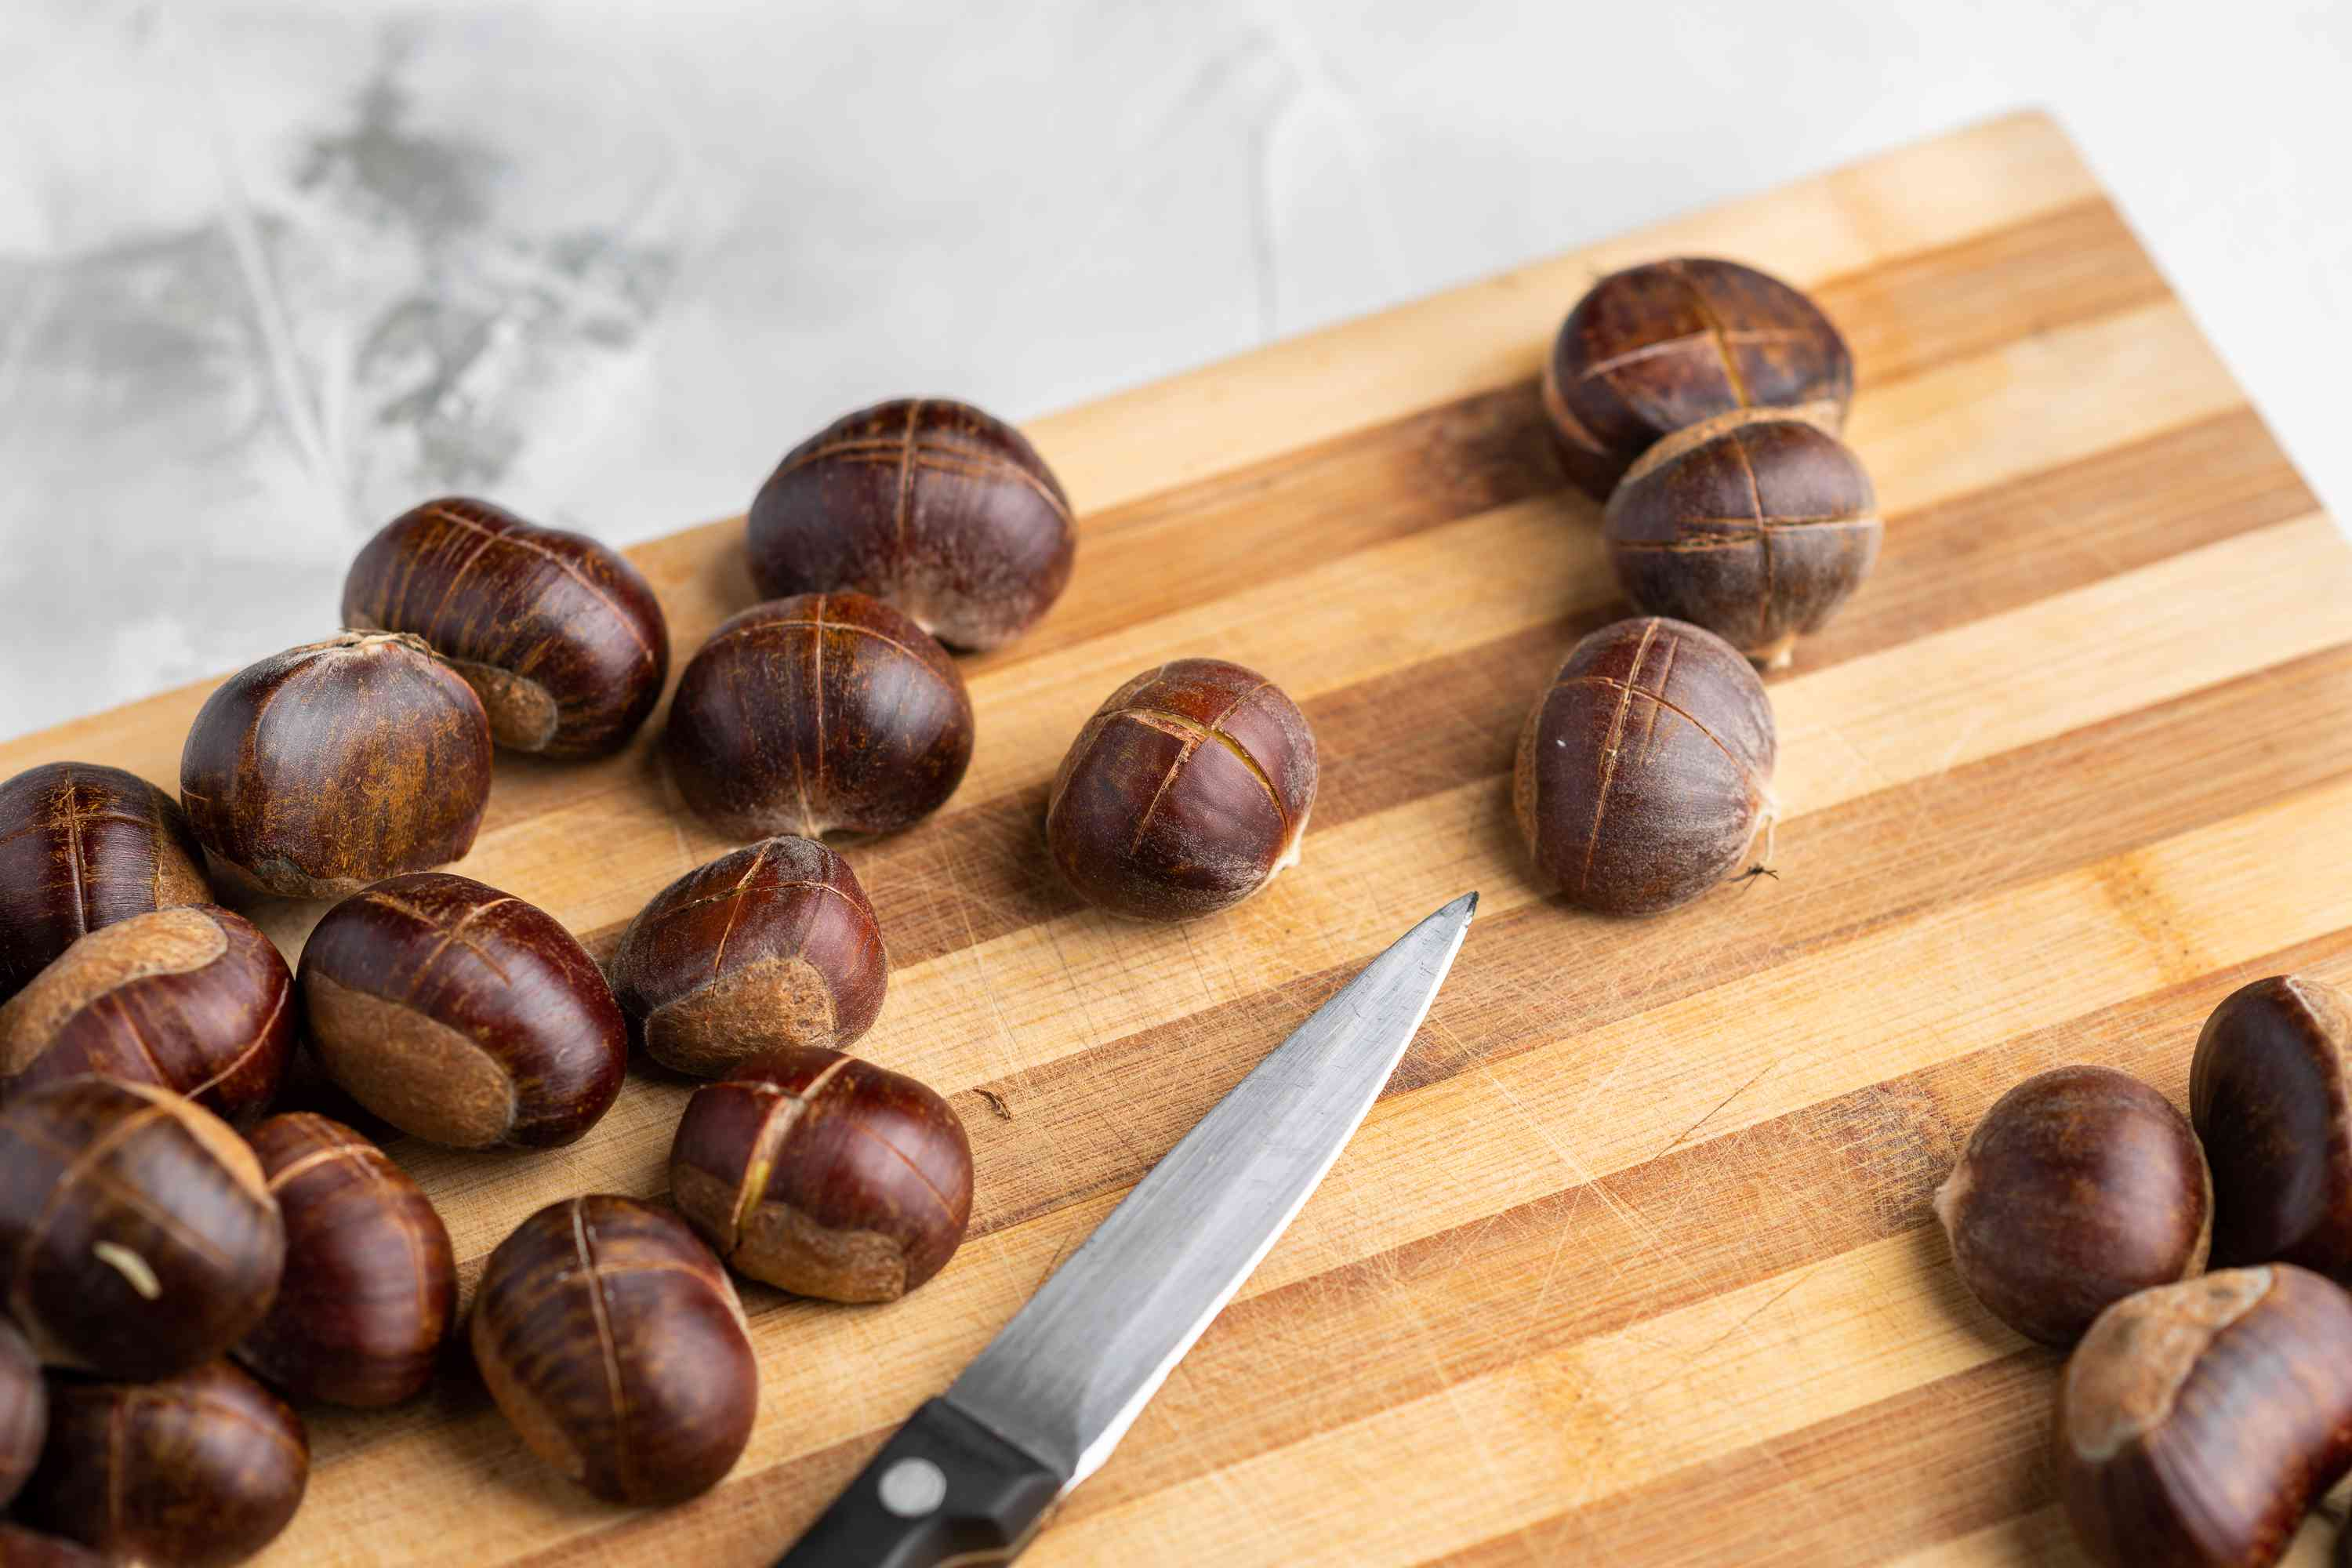 The top of each chestnut gets a knife-sliced